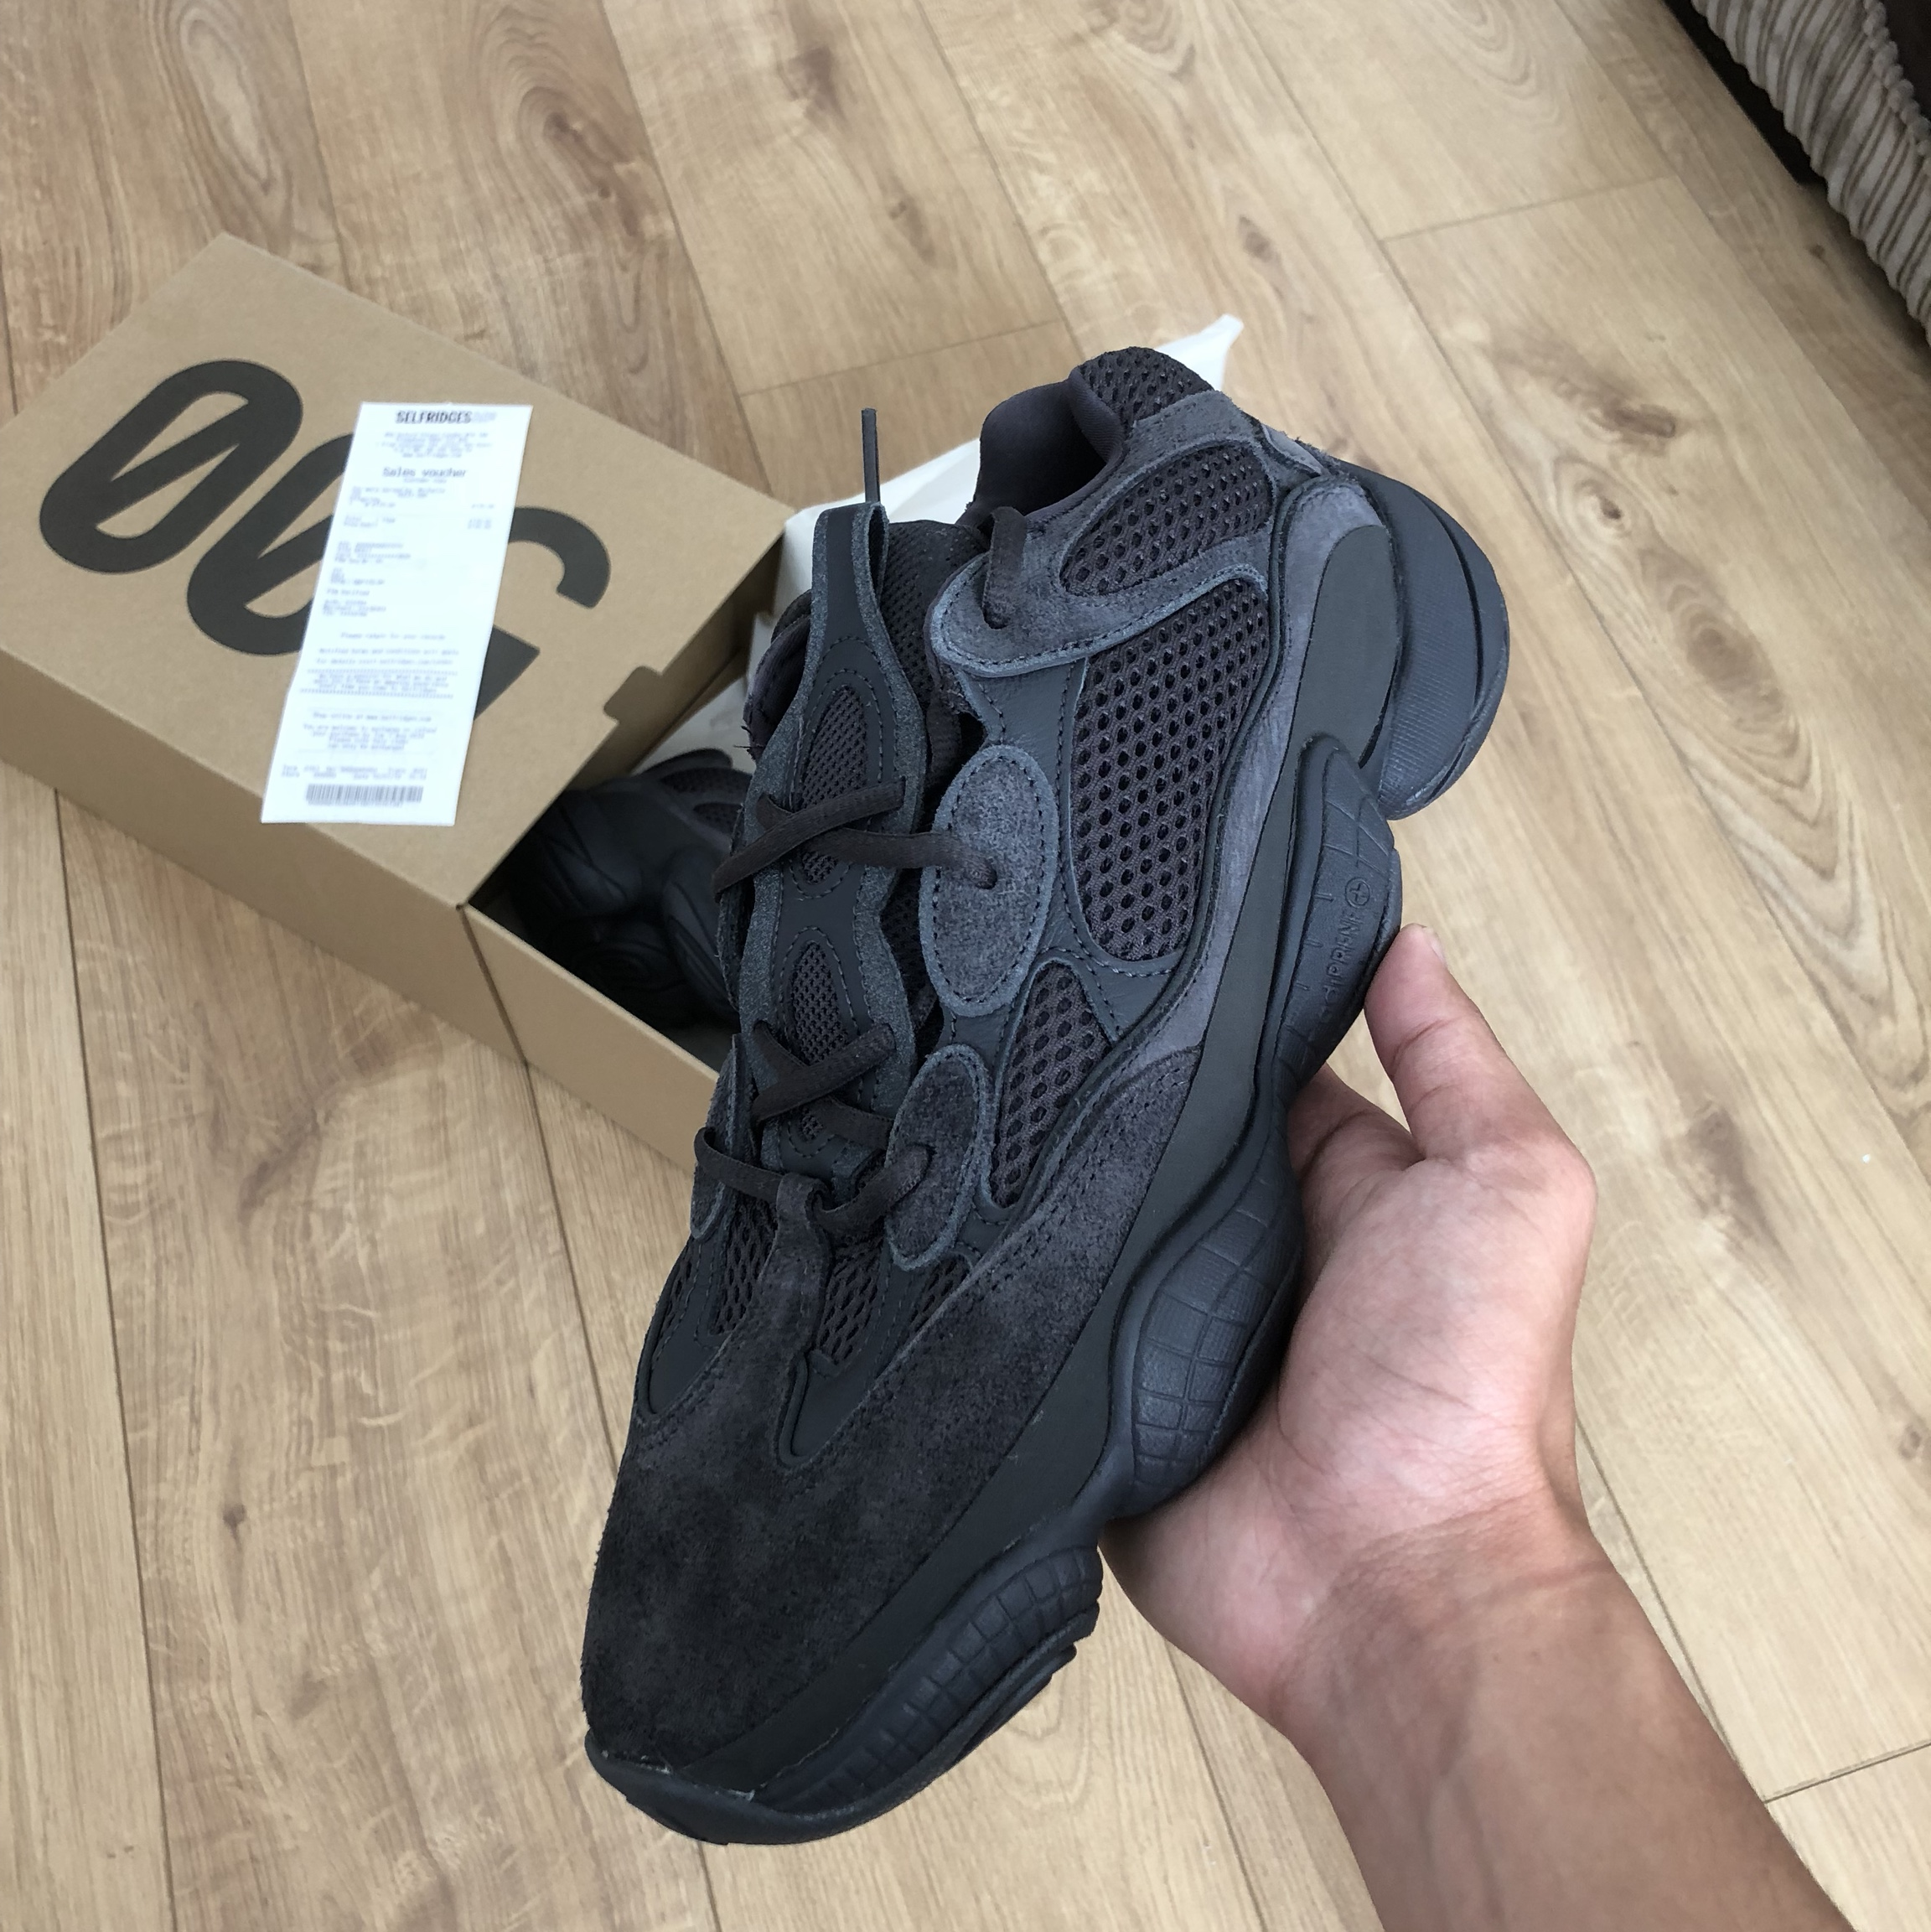 low priced d60b1 84d1c Adidas Yeezy 500 black UK 9. London meets and can... - Depop